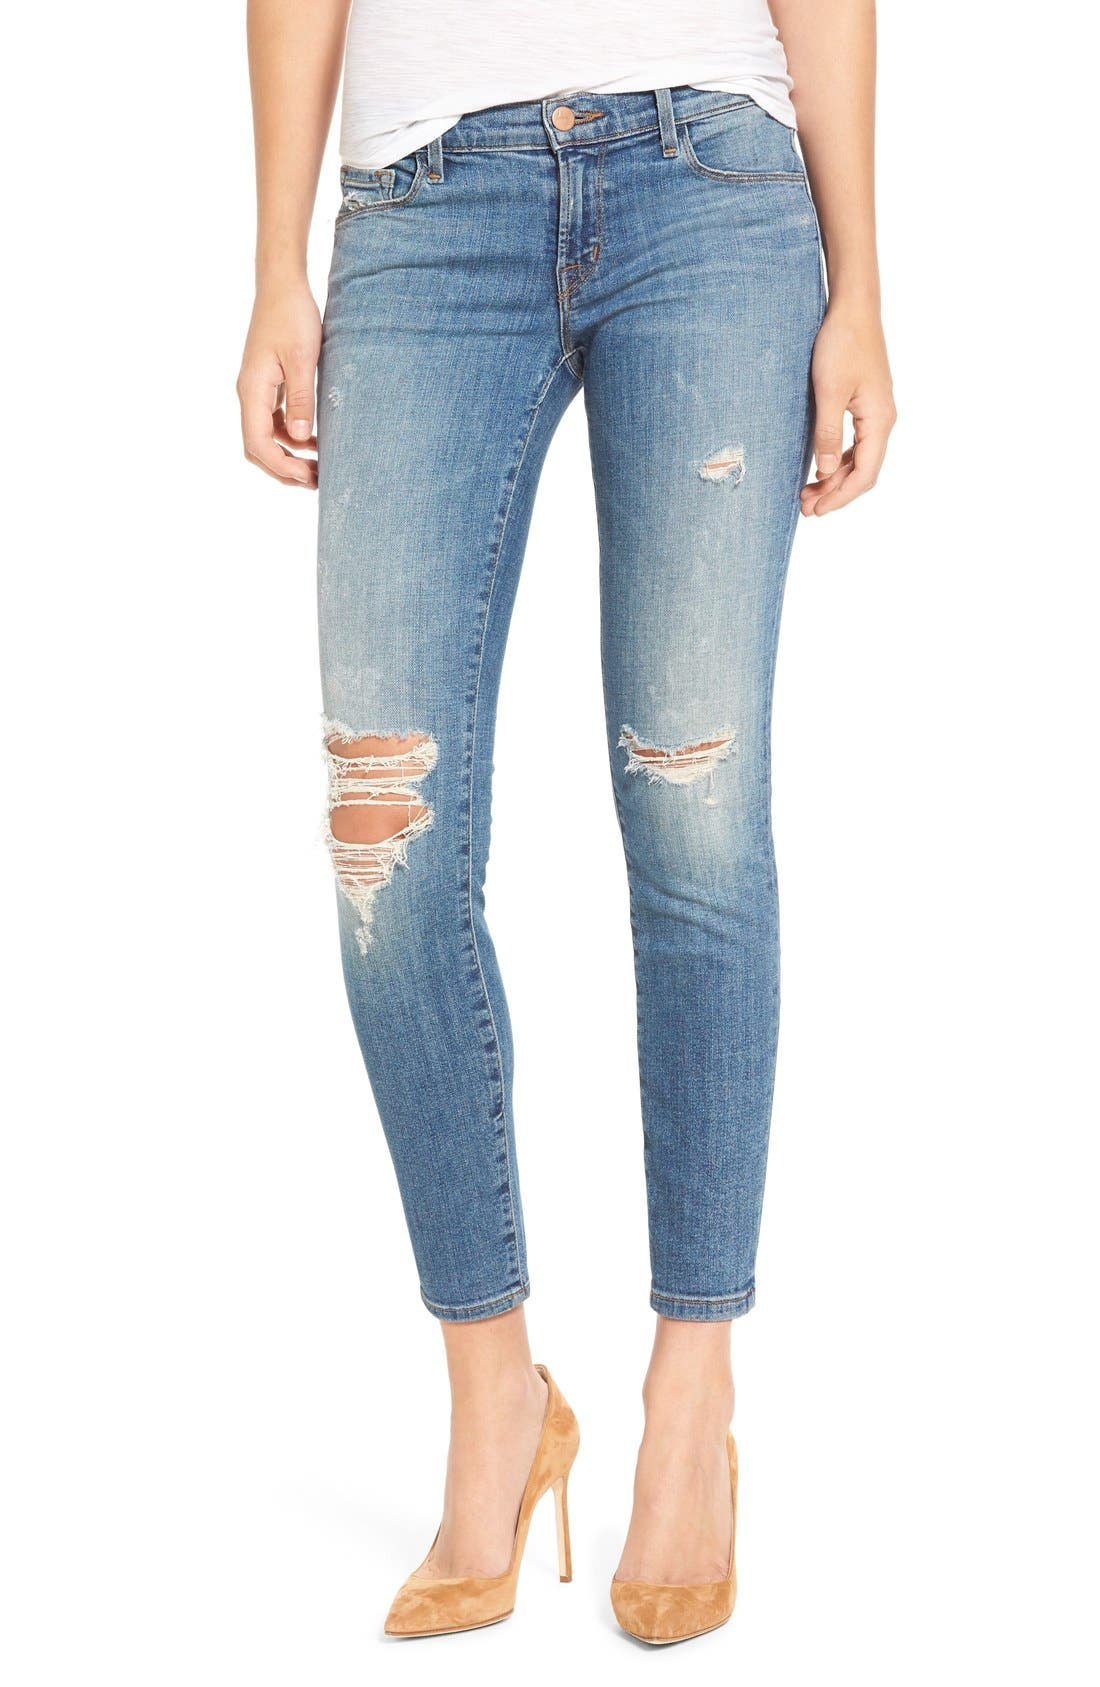 Alternate Image 1 Selected - J Brand Ripped Crop Skinny Jeans (Mischief)